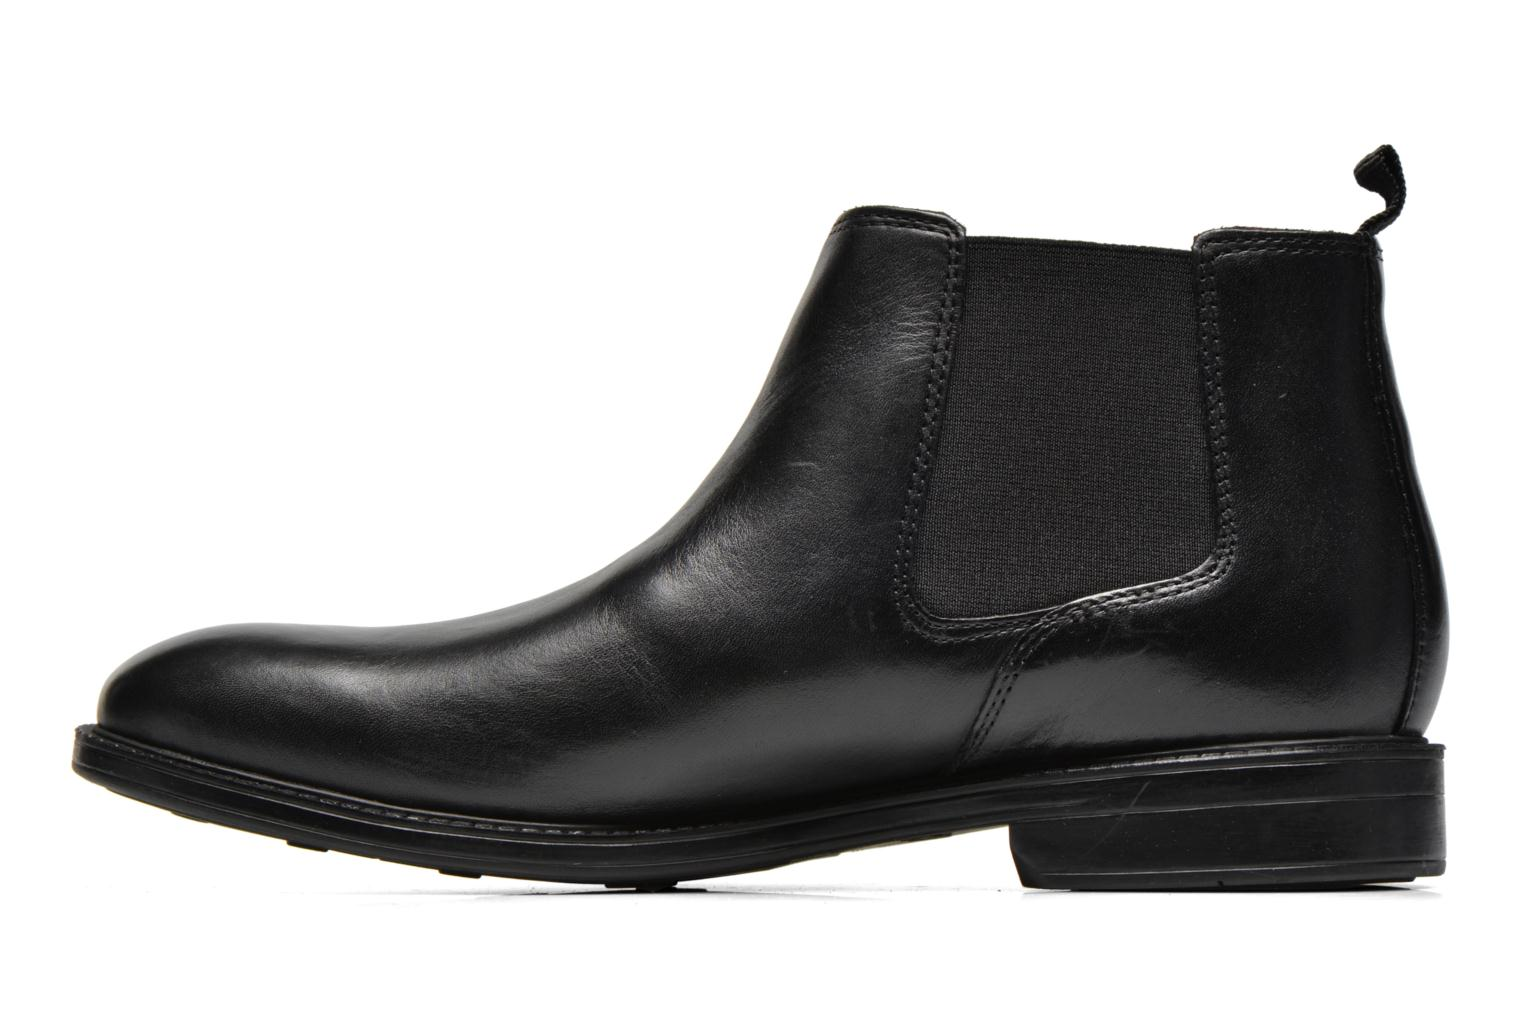 Black Clarks Clarks Top Clarks Top Chilver Chilver leather Chilver leather Black Top Black qXw8nUa6